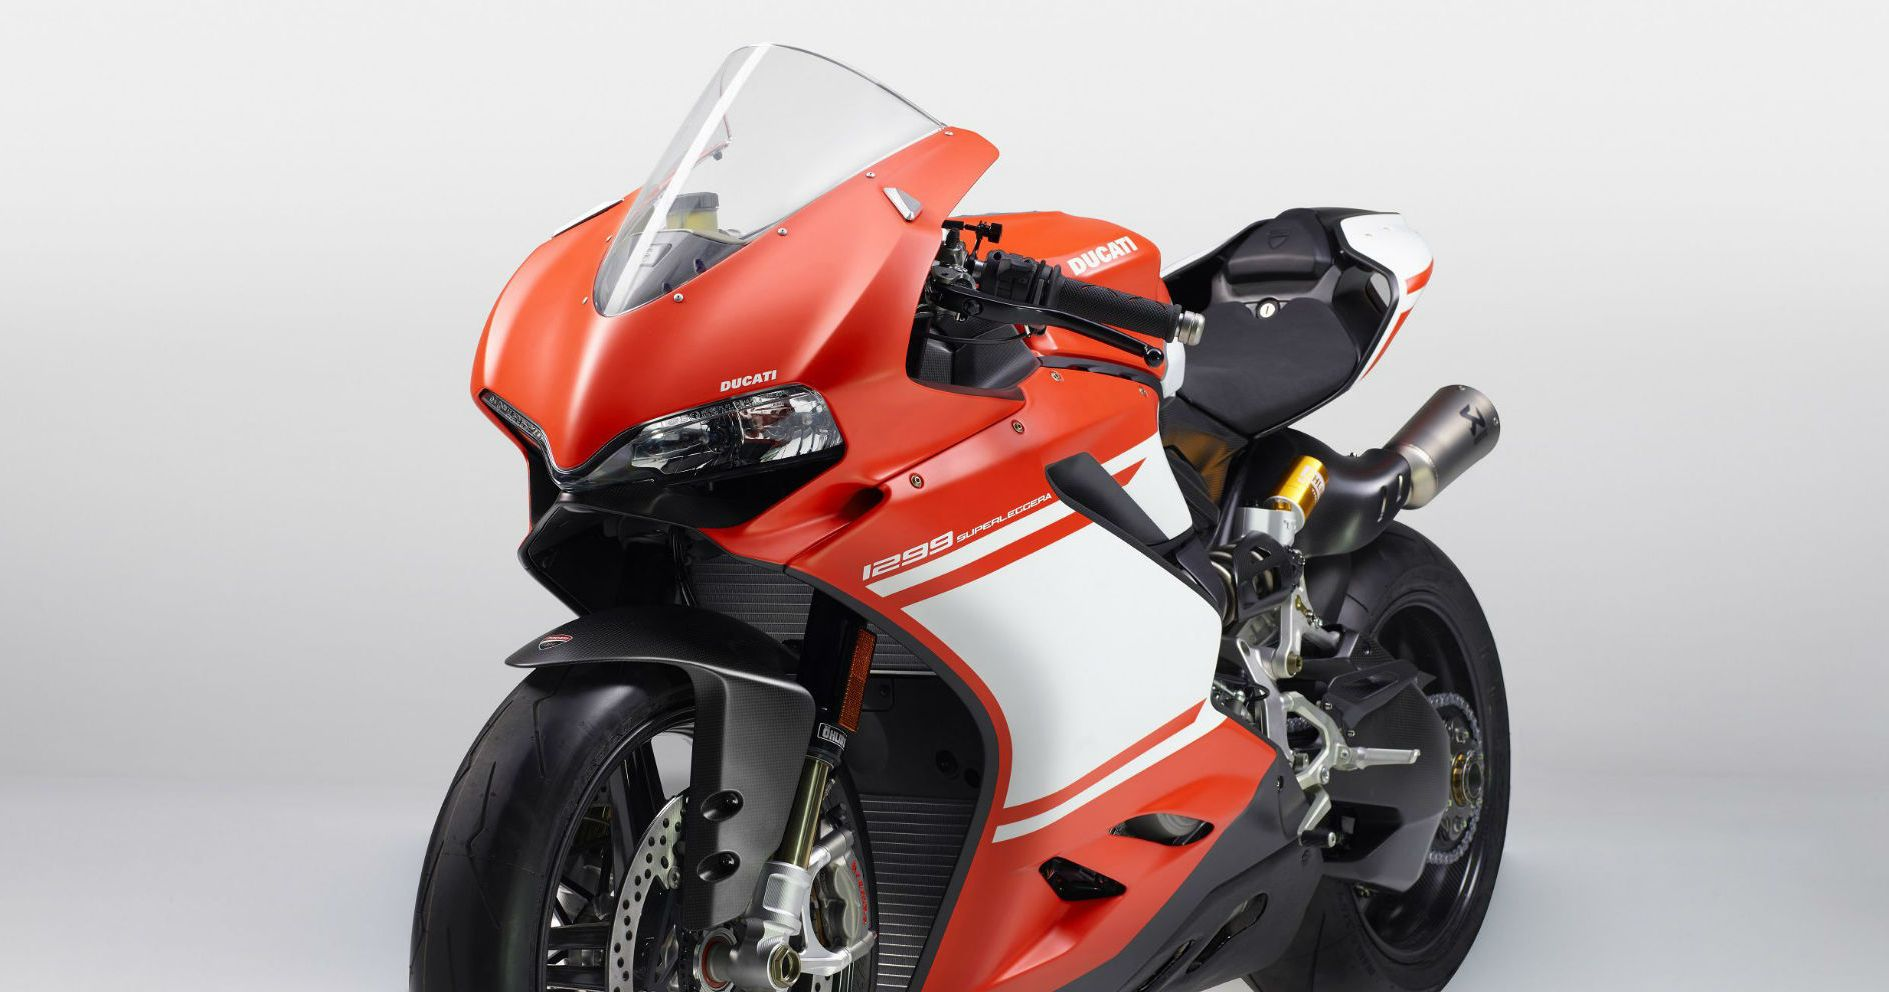 Which Of The Following Motorcycle Producing Countries Does It Best